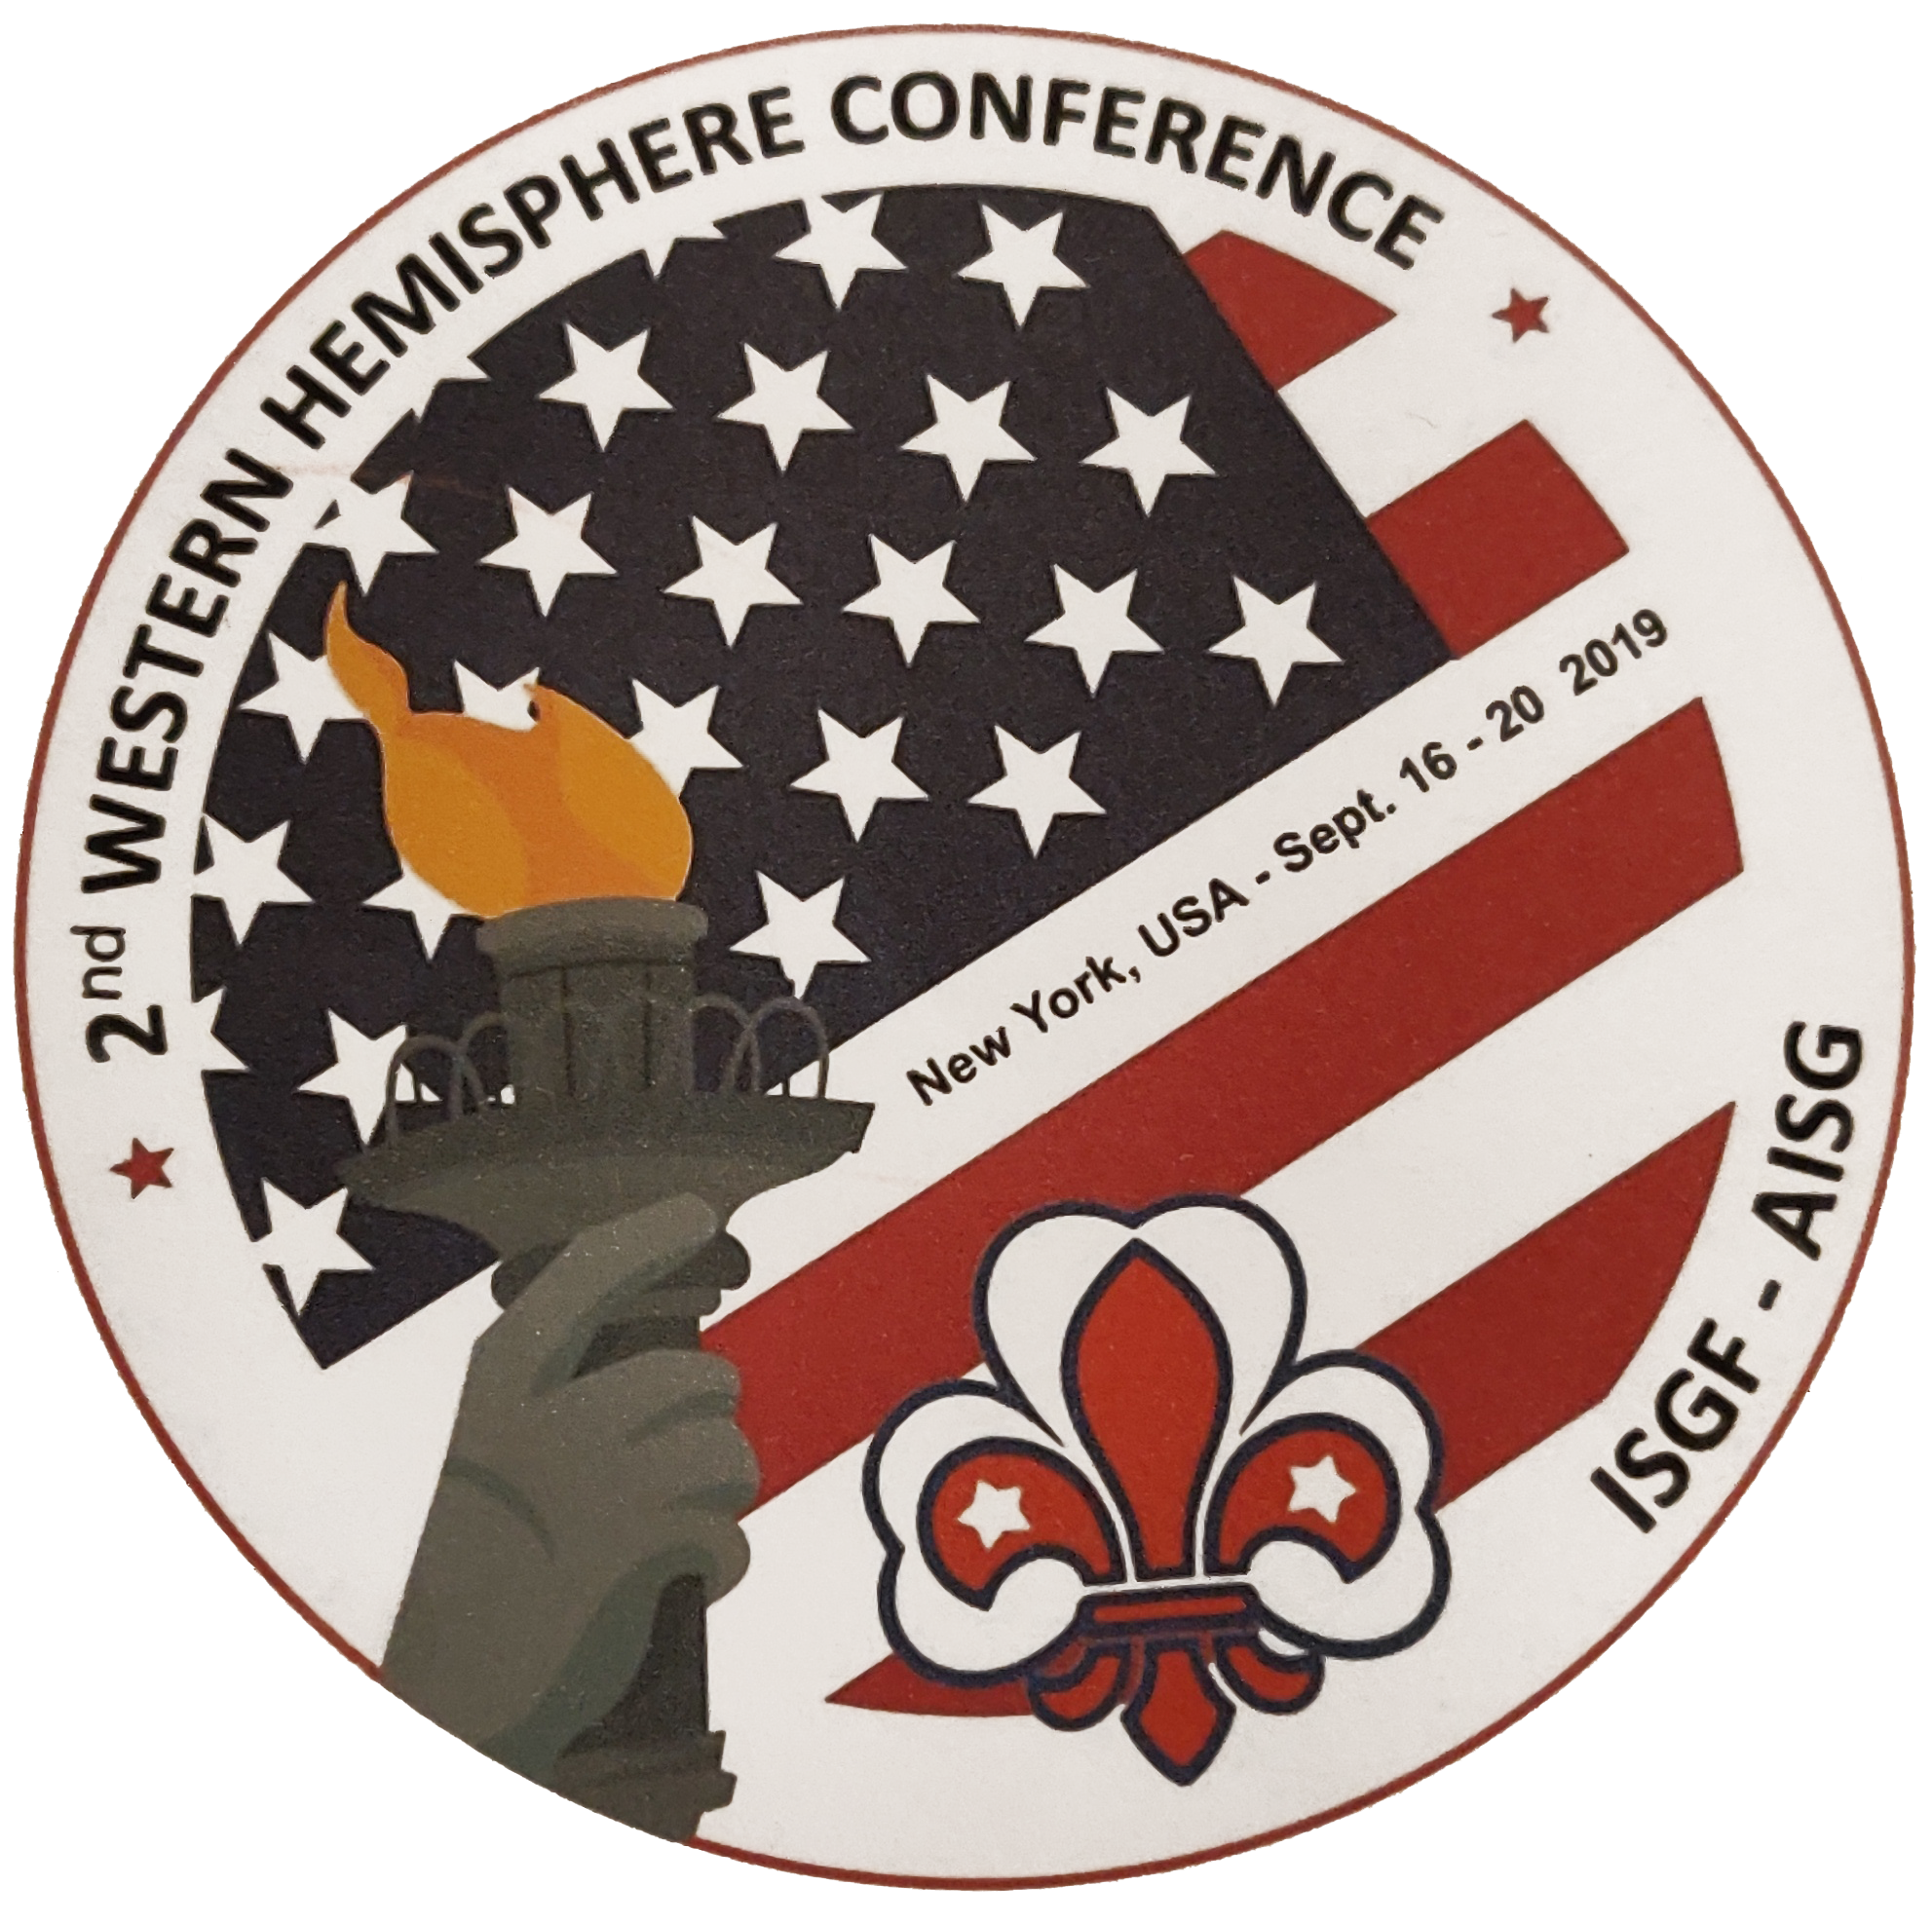 september 16 - 20, 2019 - Western Hemisphere CONFERENCE is coming soon!!